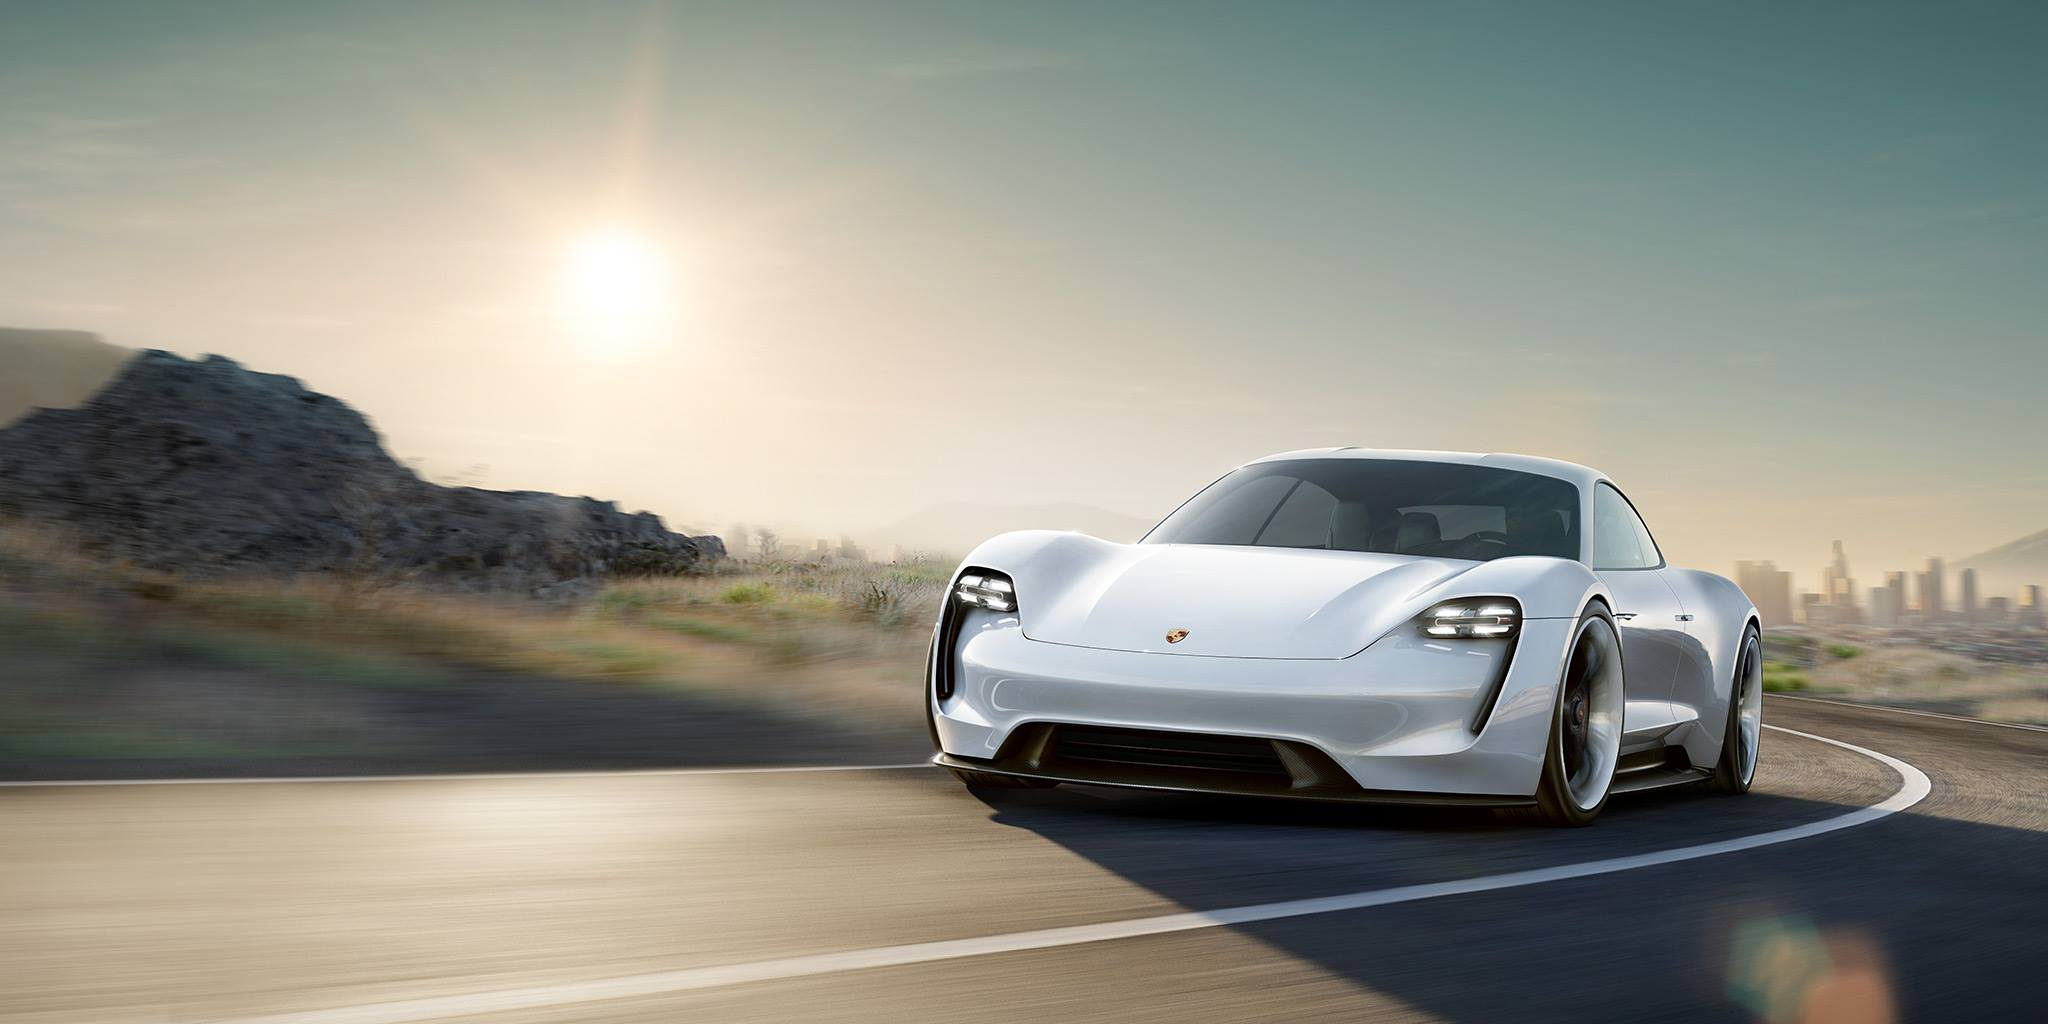 Porsche Taycan is the brand's first fully electric vehicle